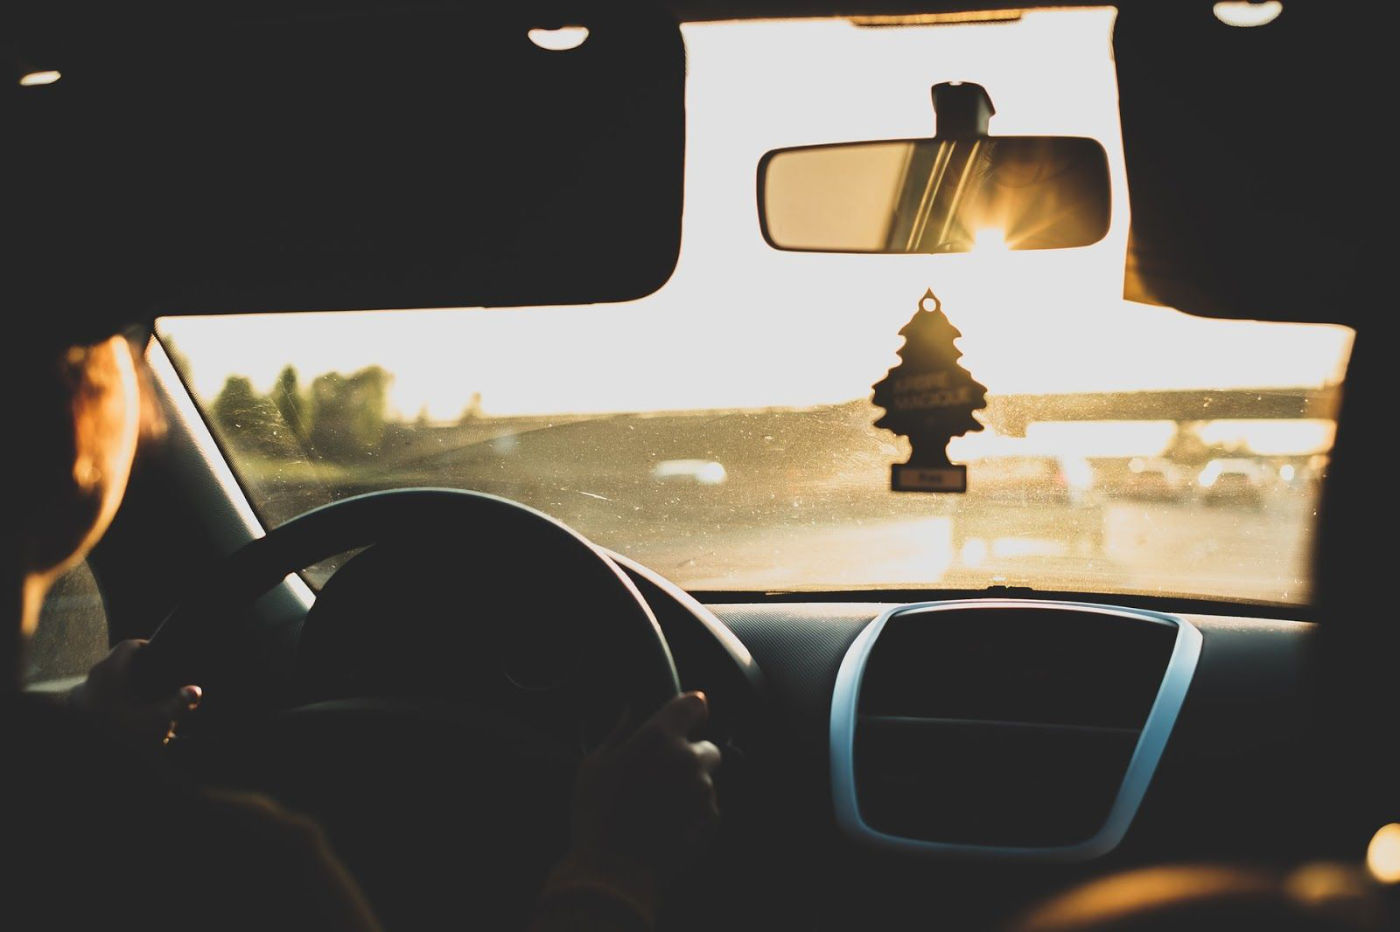 Get Your Vehicle Road Trip Ready for the Holidays